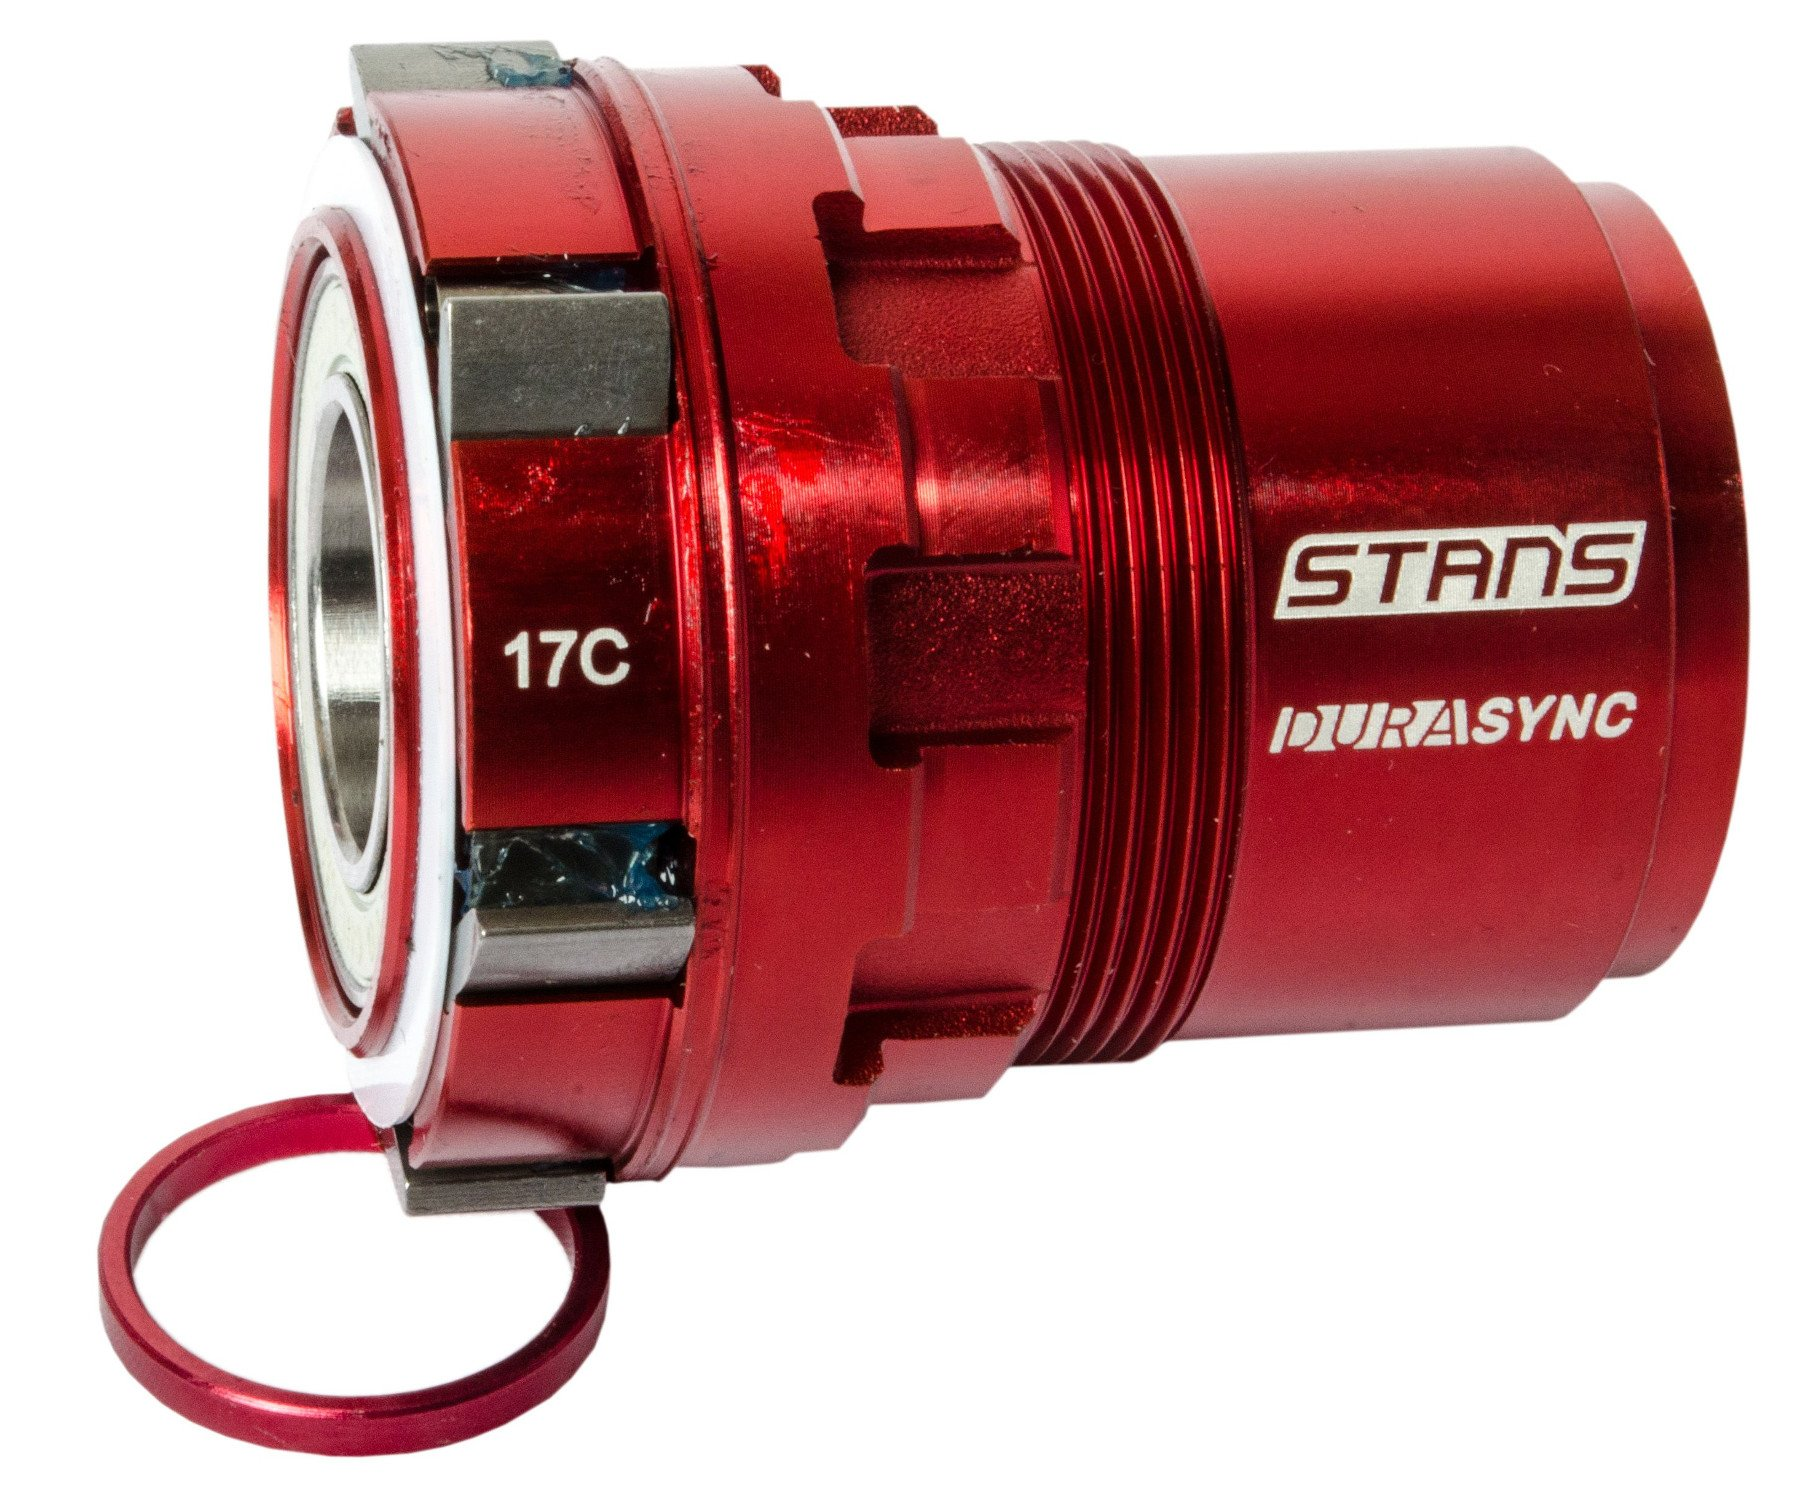 Stans Freehub body kit, Durasync 6-pawl, Neo, XD - red - ZH1642